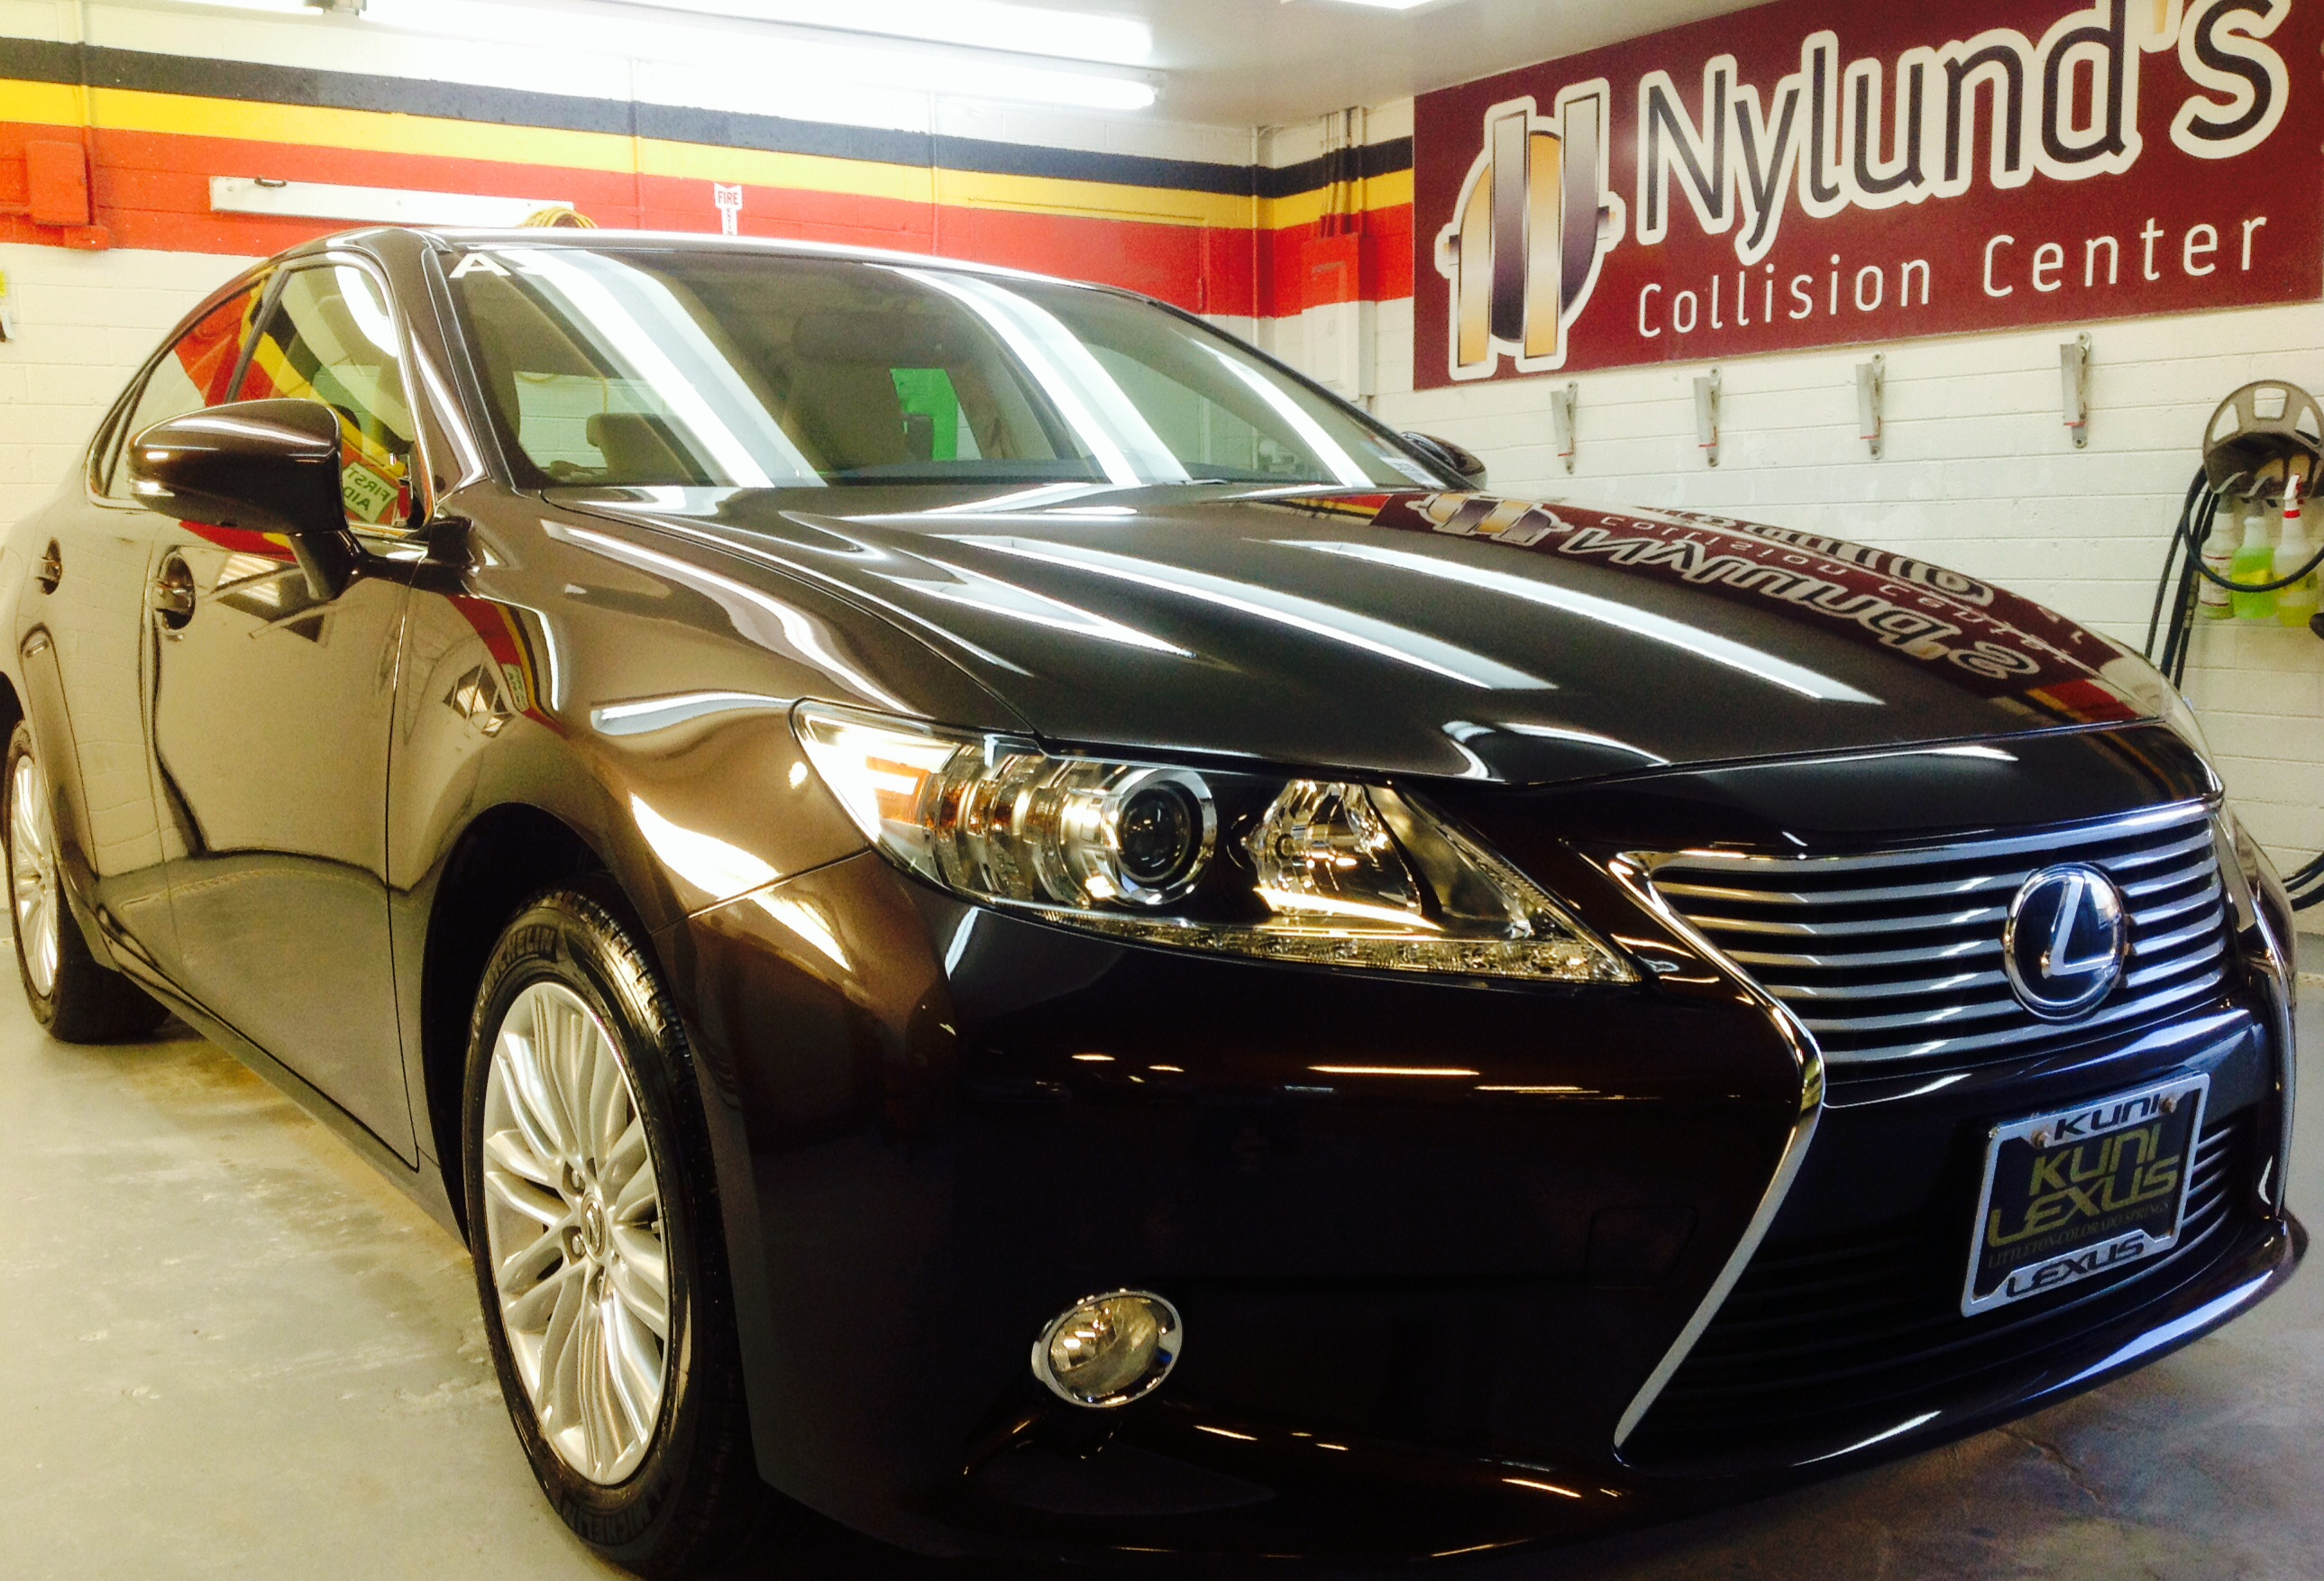 sales photos glade silver belle lexus auto a repair to full is view and size fl here click e